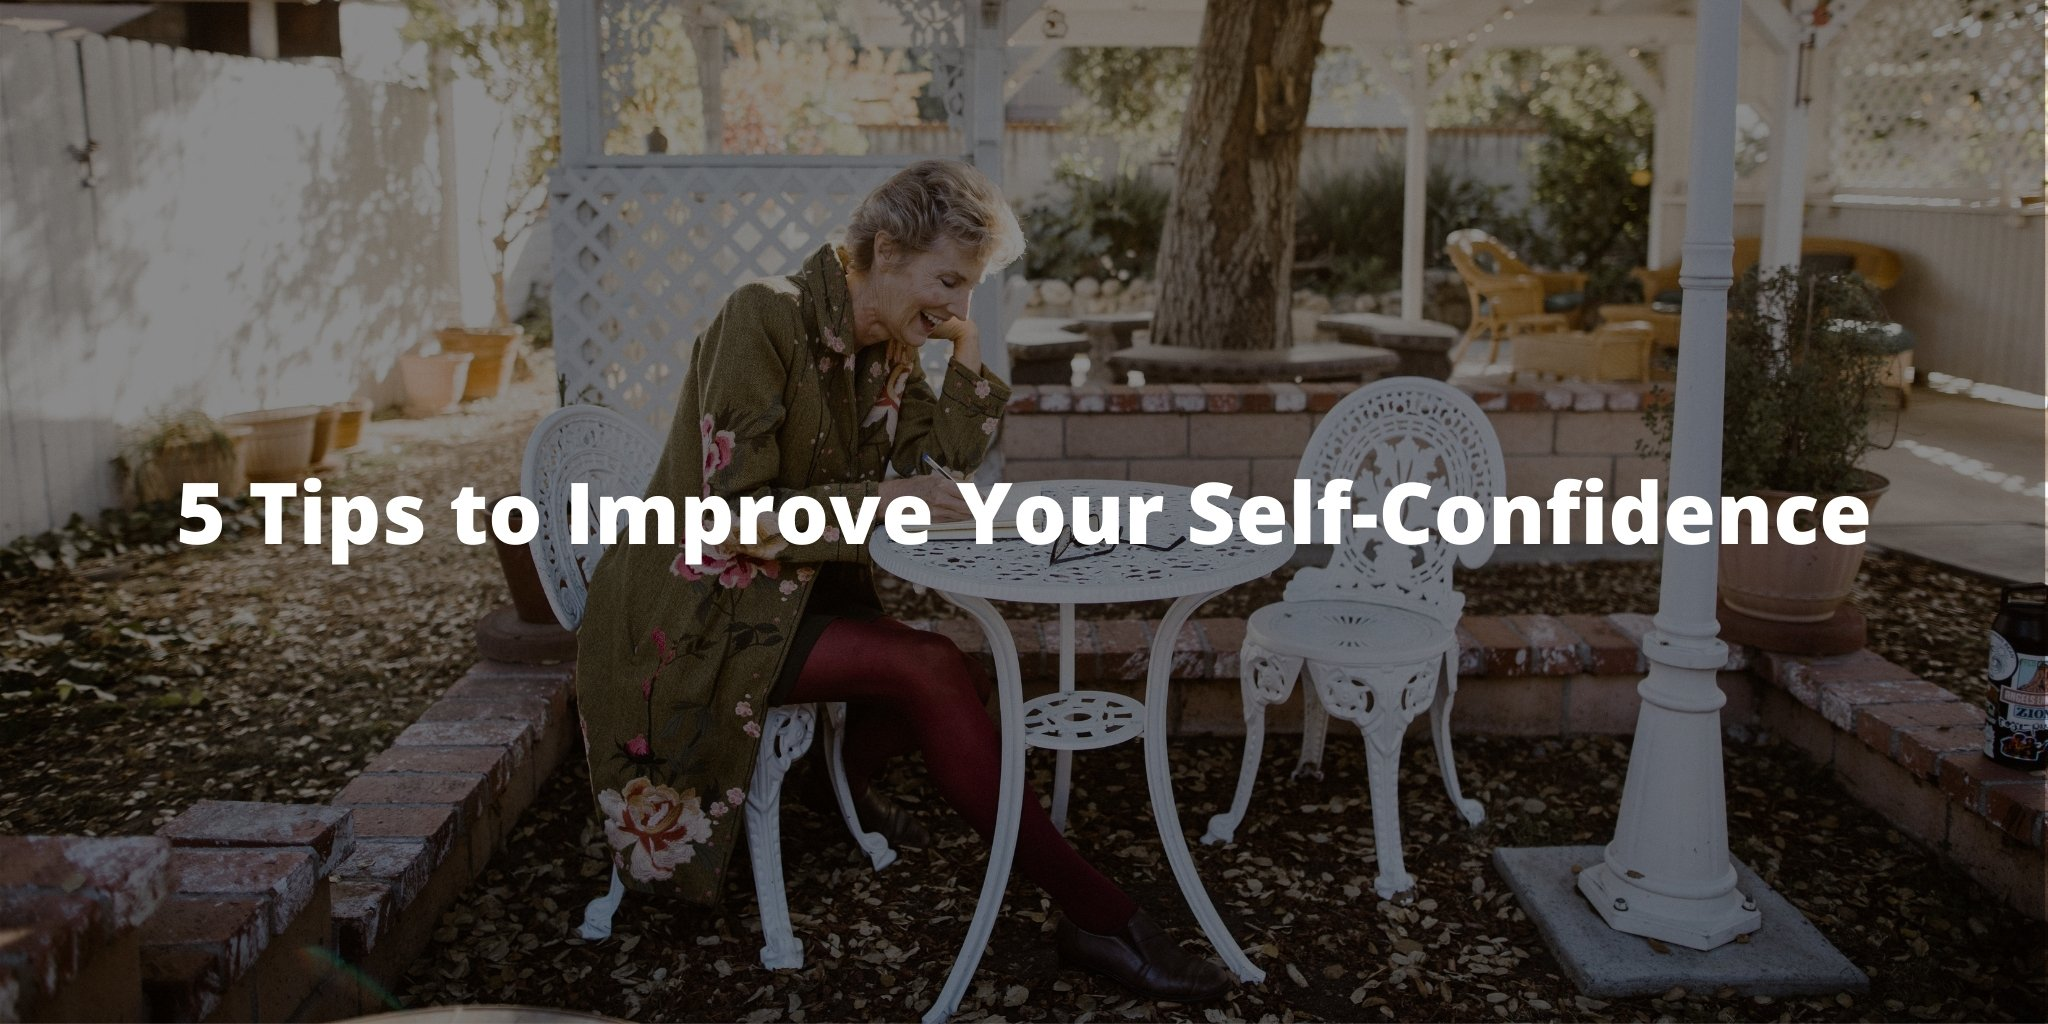 5 Tips to Improve Your Self-Confidence